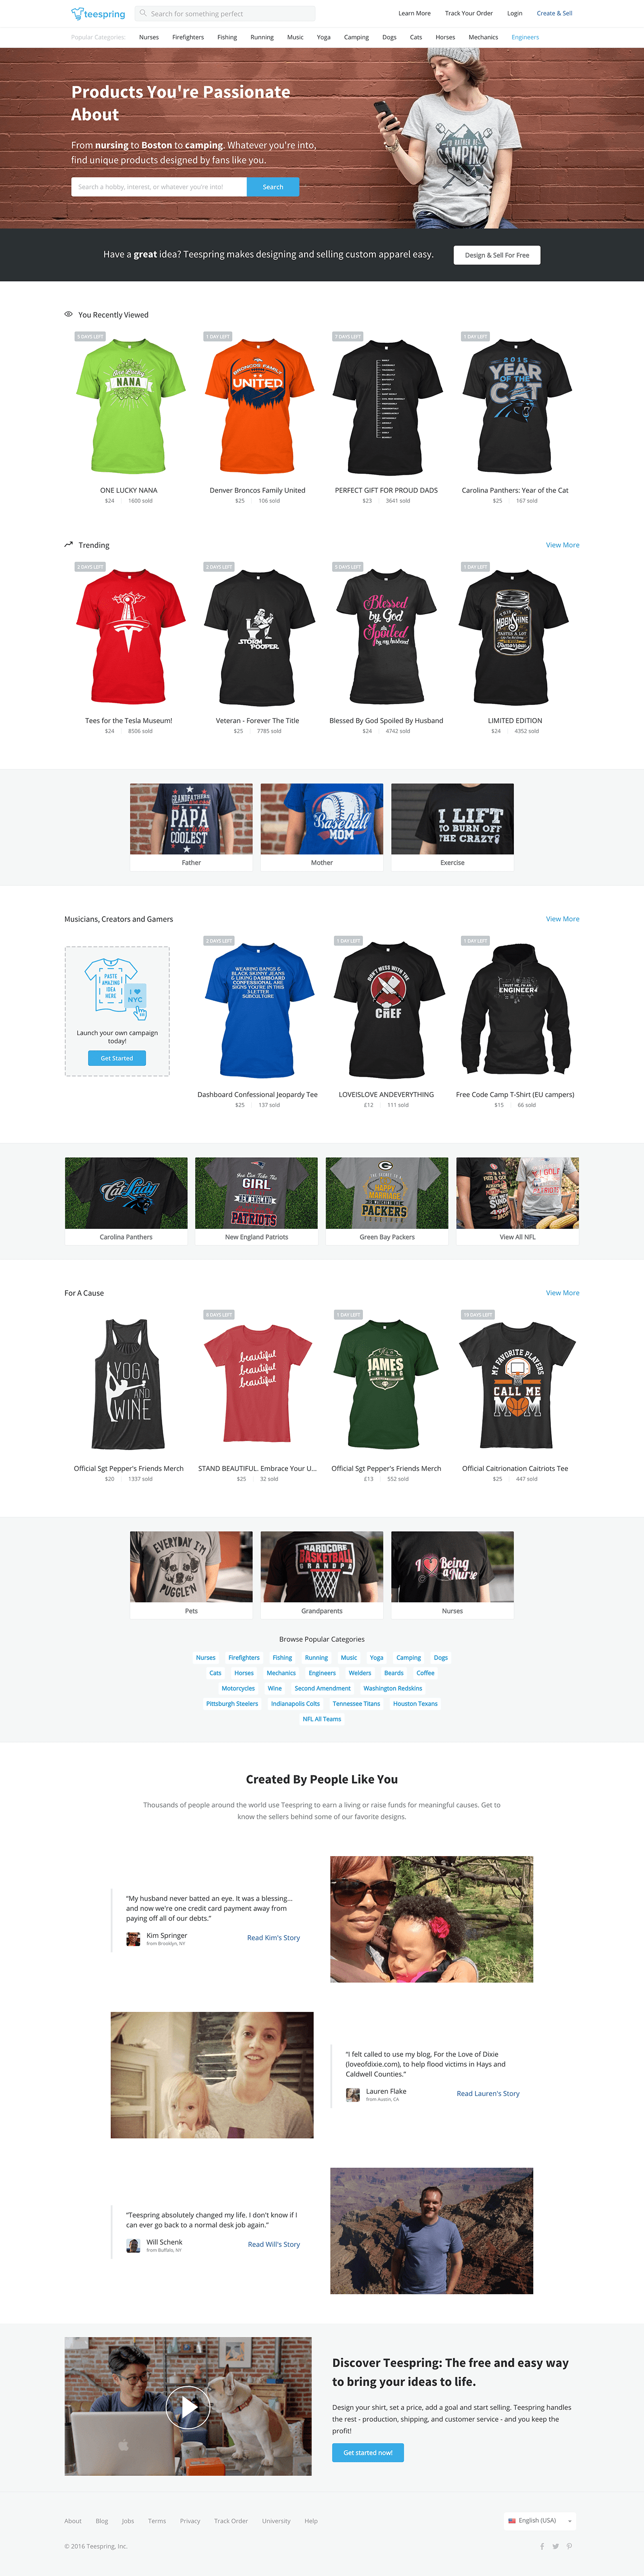 Teespring Homepage Design